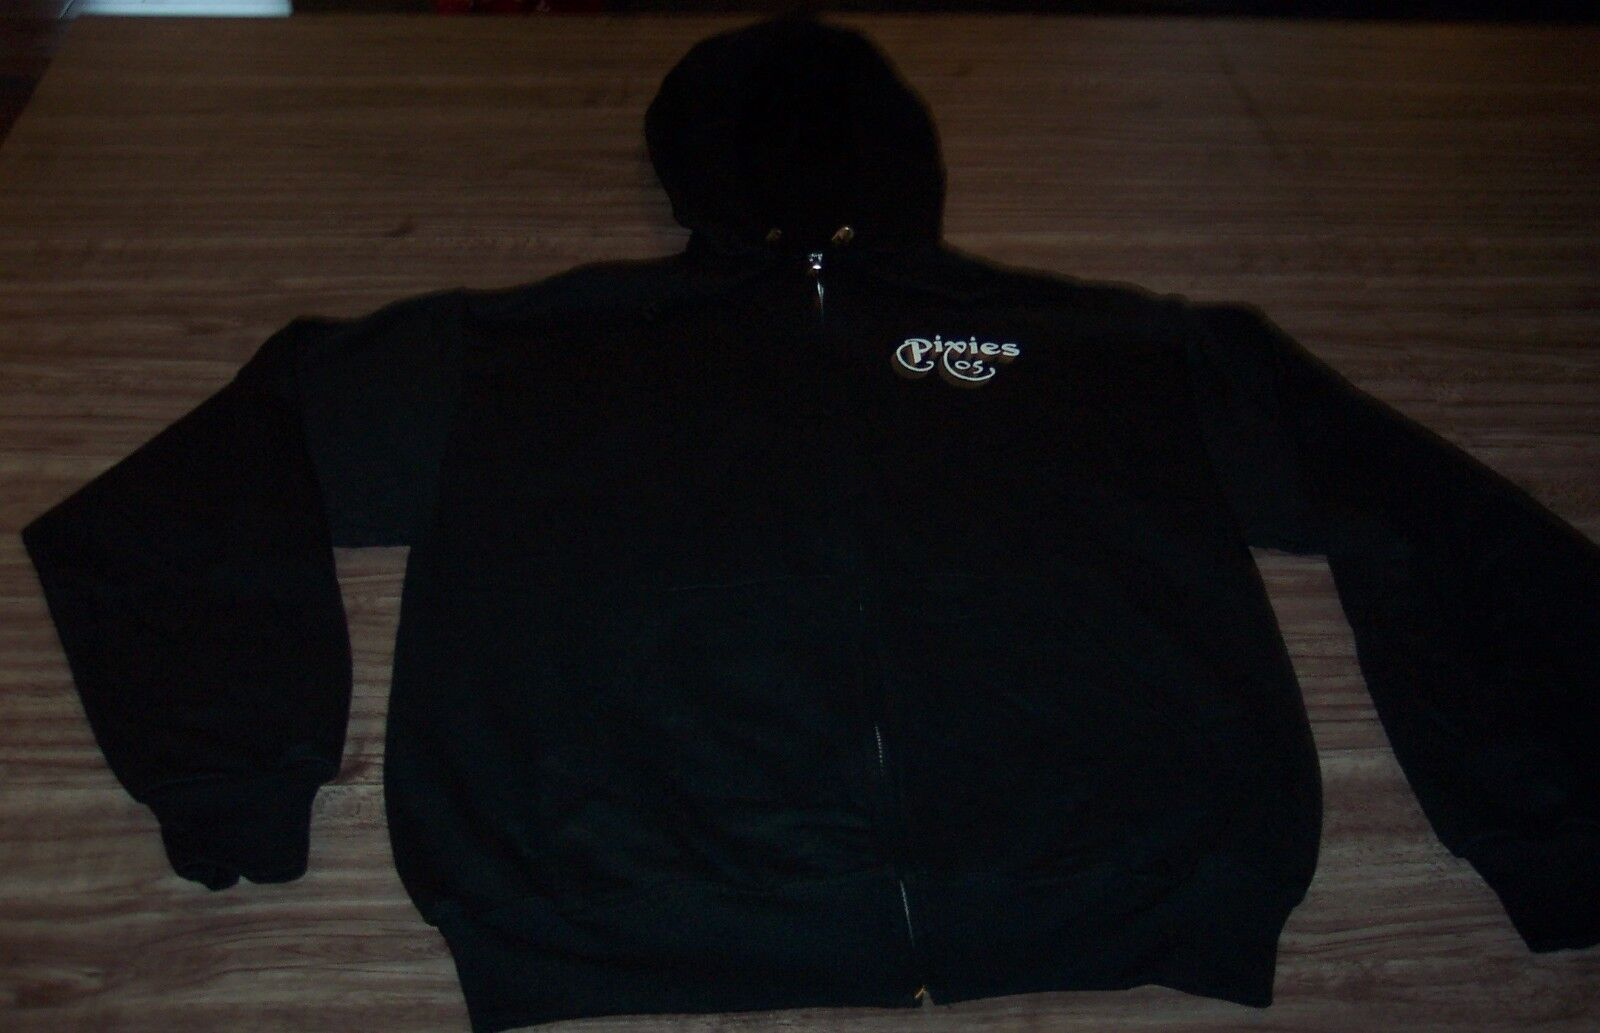 PIXIES 2005 NORTH AMERICAN TOUR HOODIE HOODED Sweatshirt MEDIUM NEW